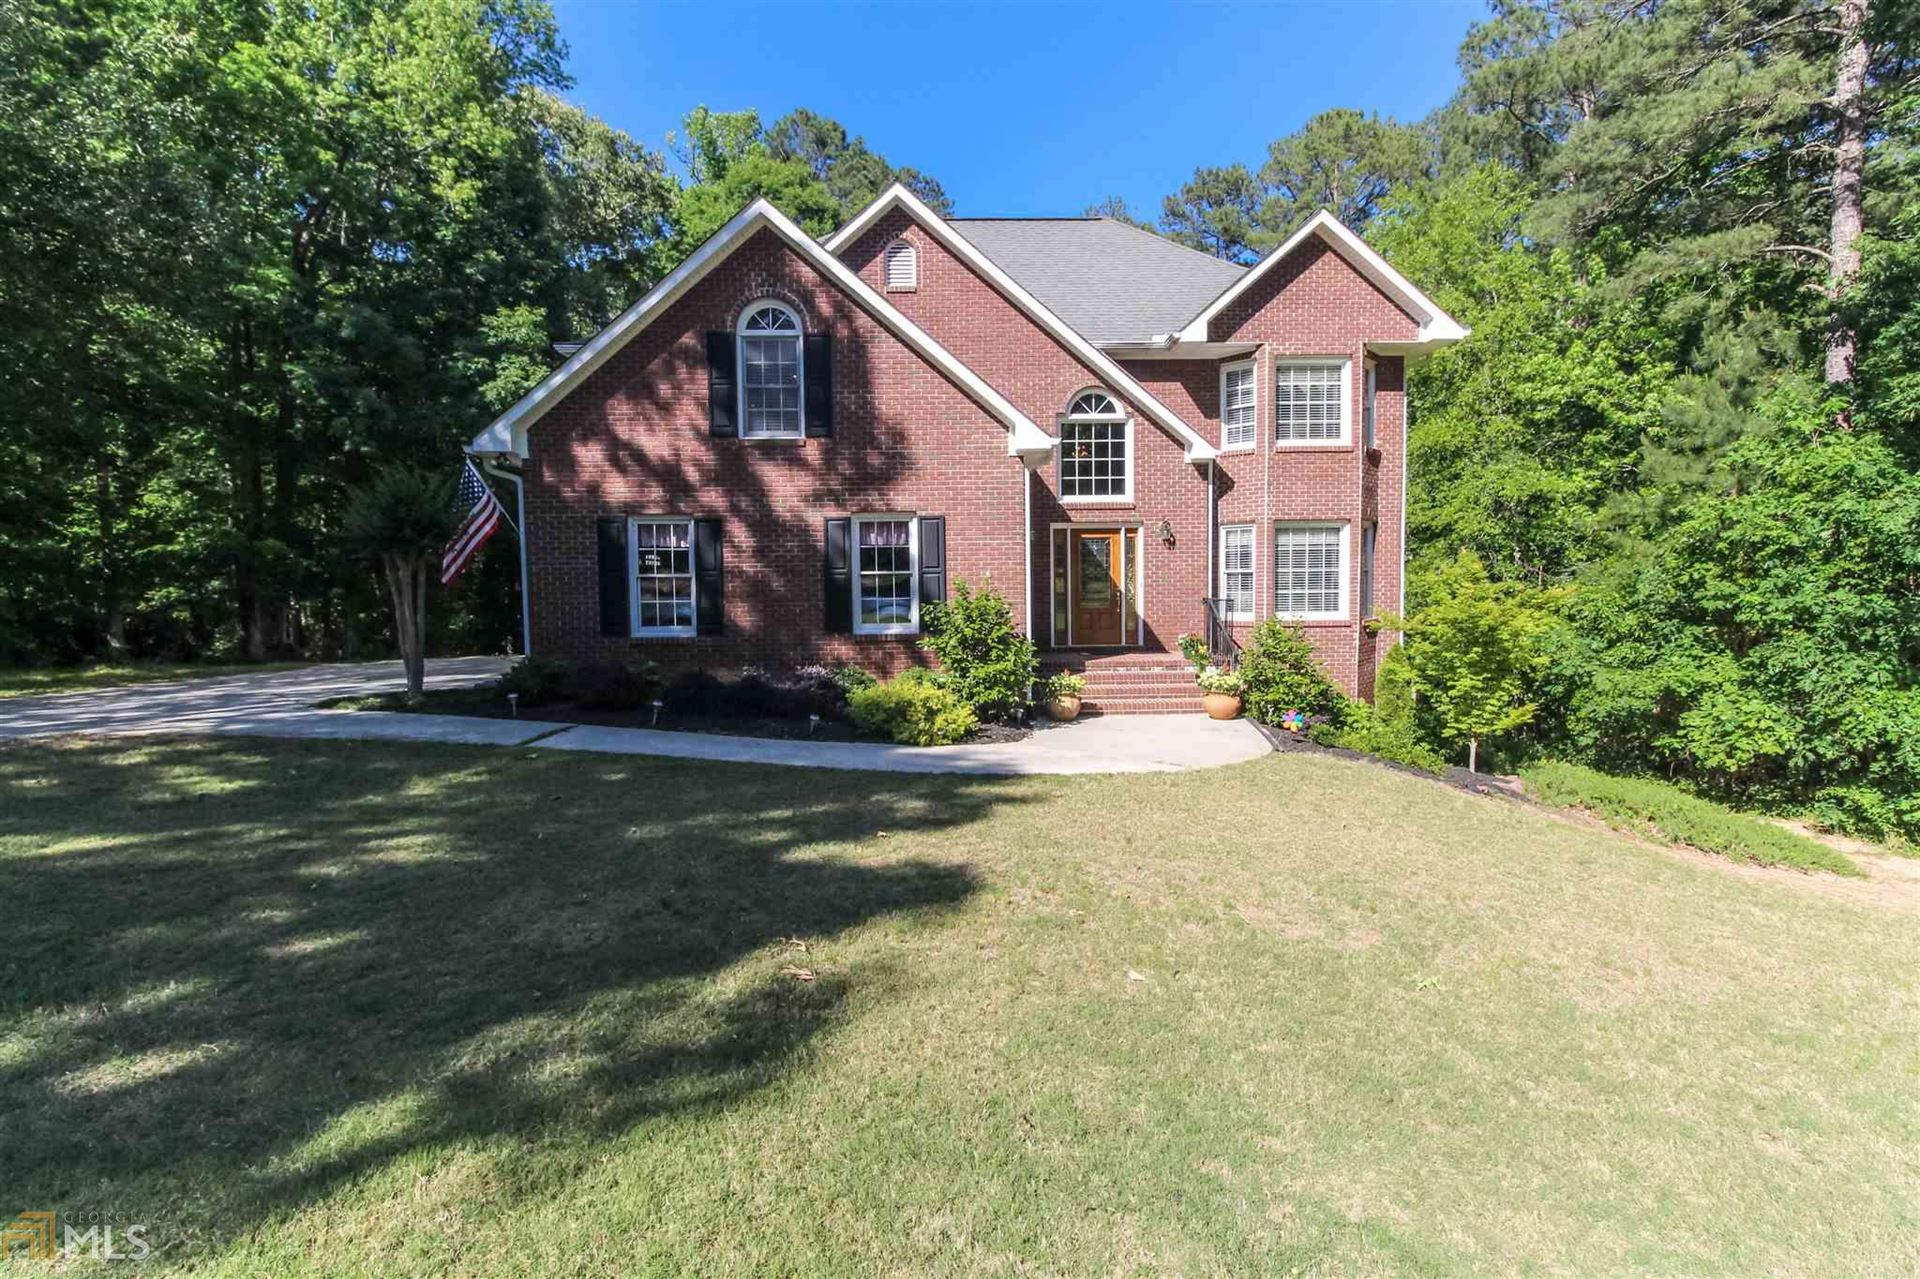 250 Weeping Willow Way, Tyrone, GA 30290 - #: 8785691